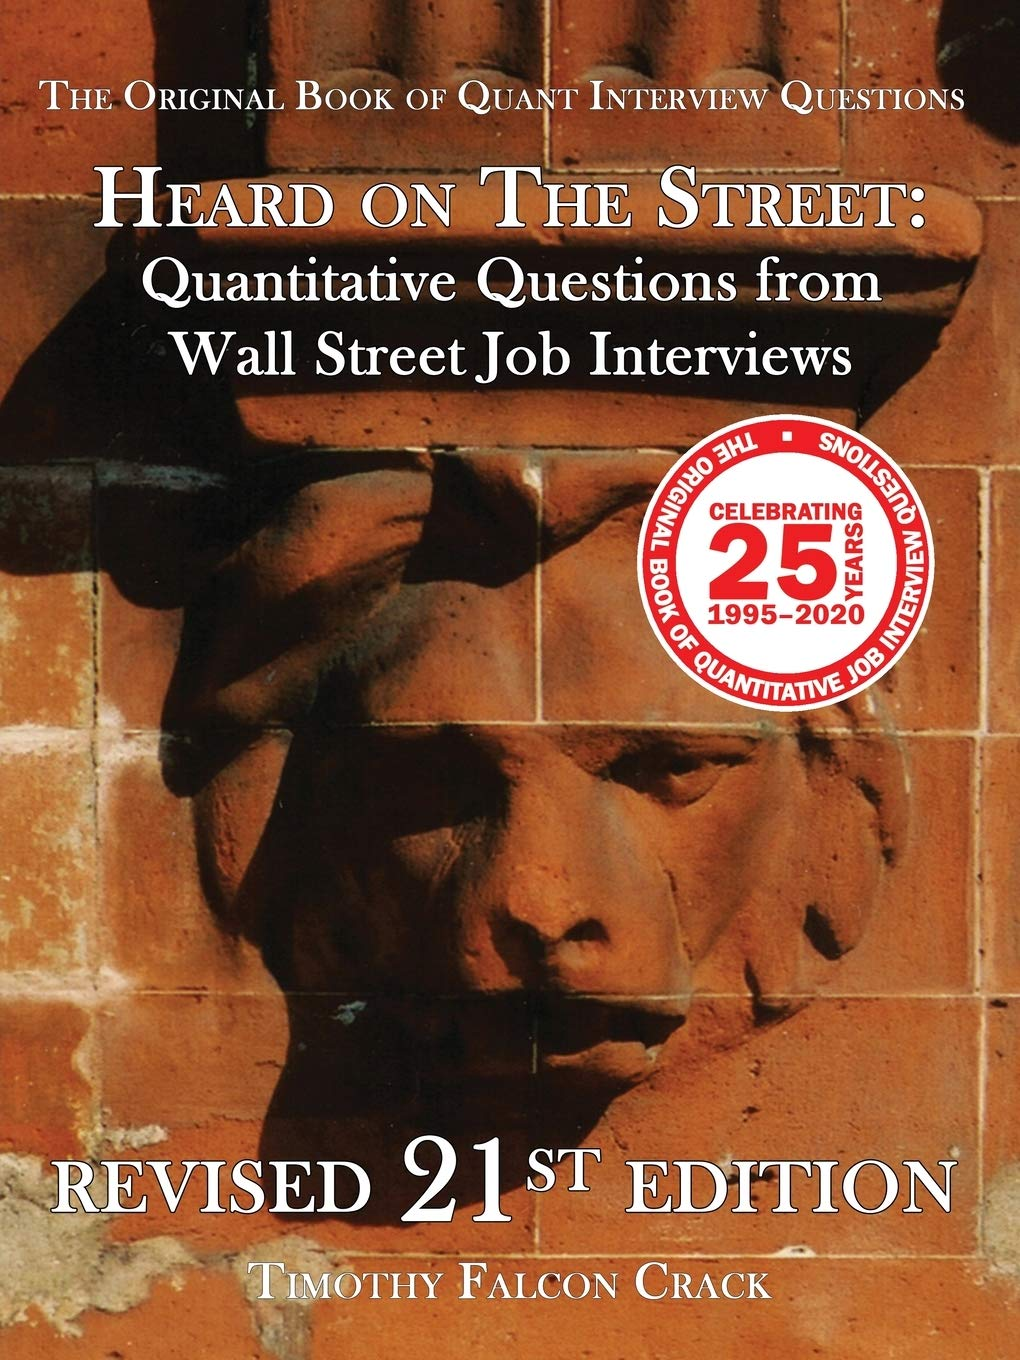 Image for Heard on the Street: Quantitative Questions from Wall Street Job Interviews (Revised 21st)